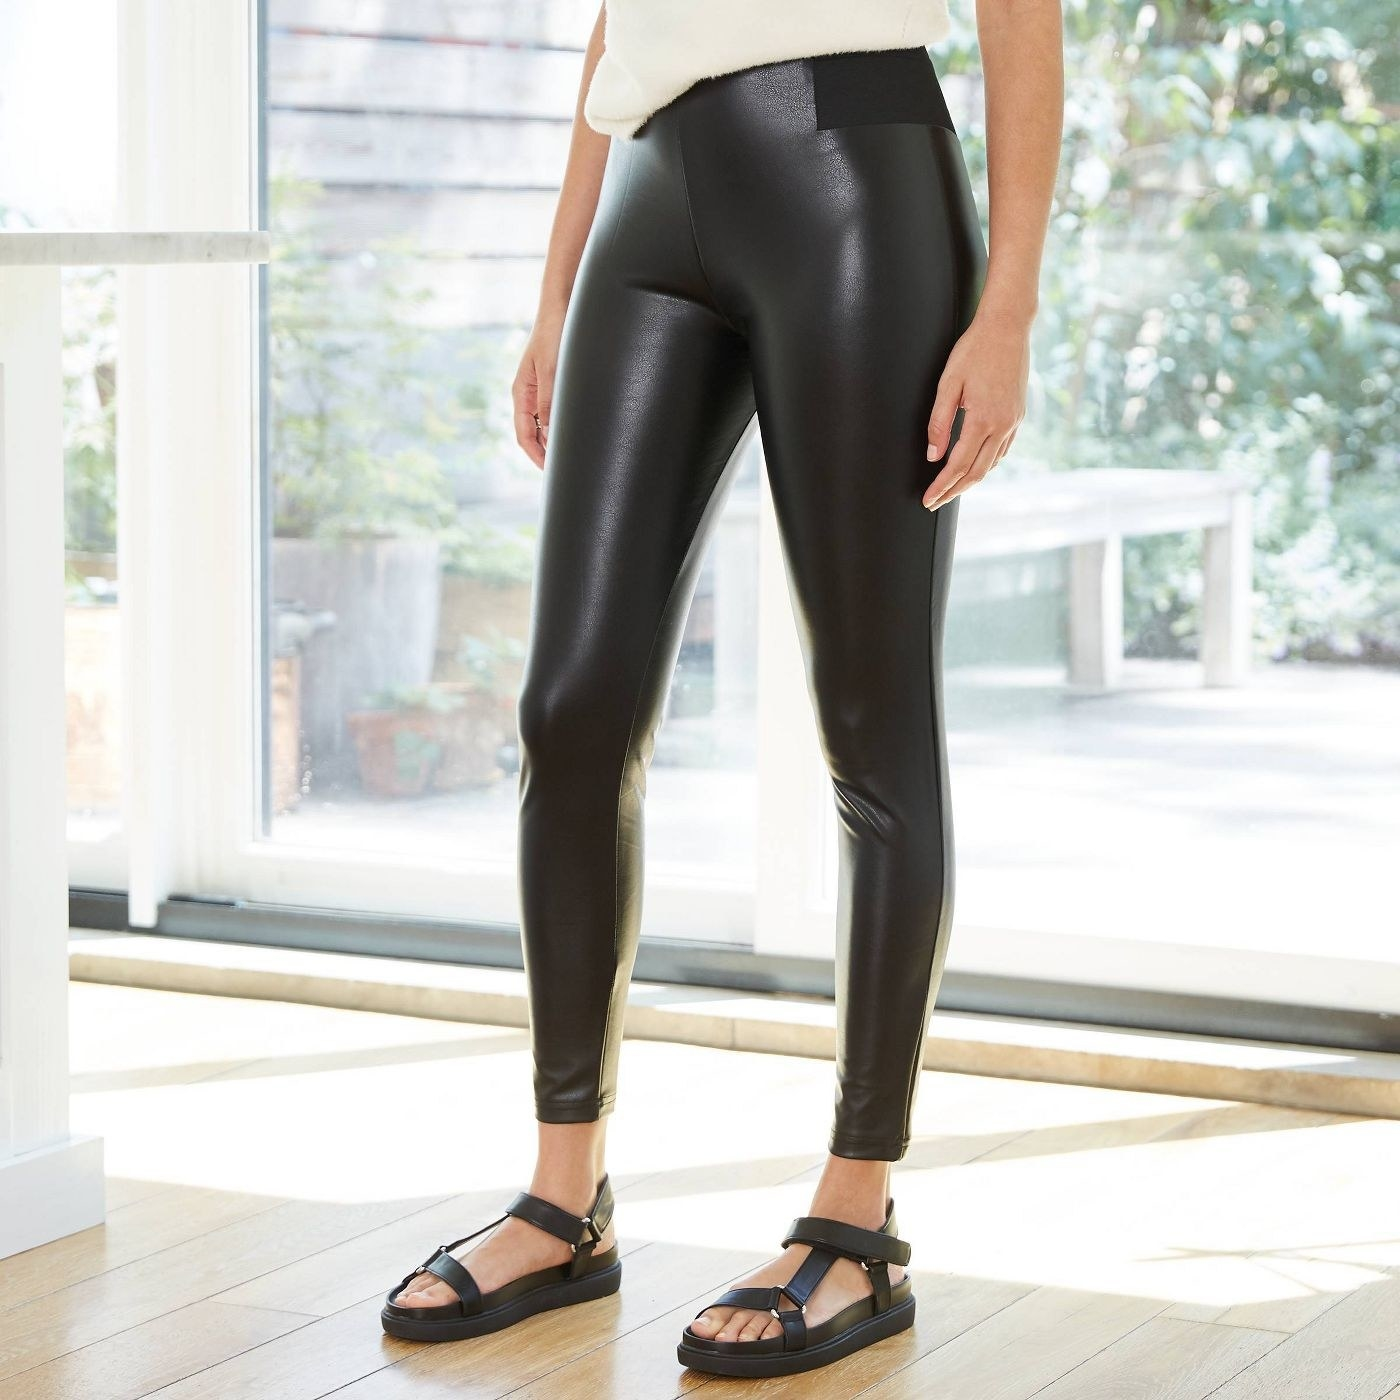 Model in black faux leather leggings